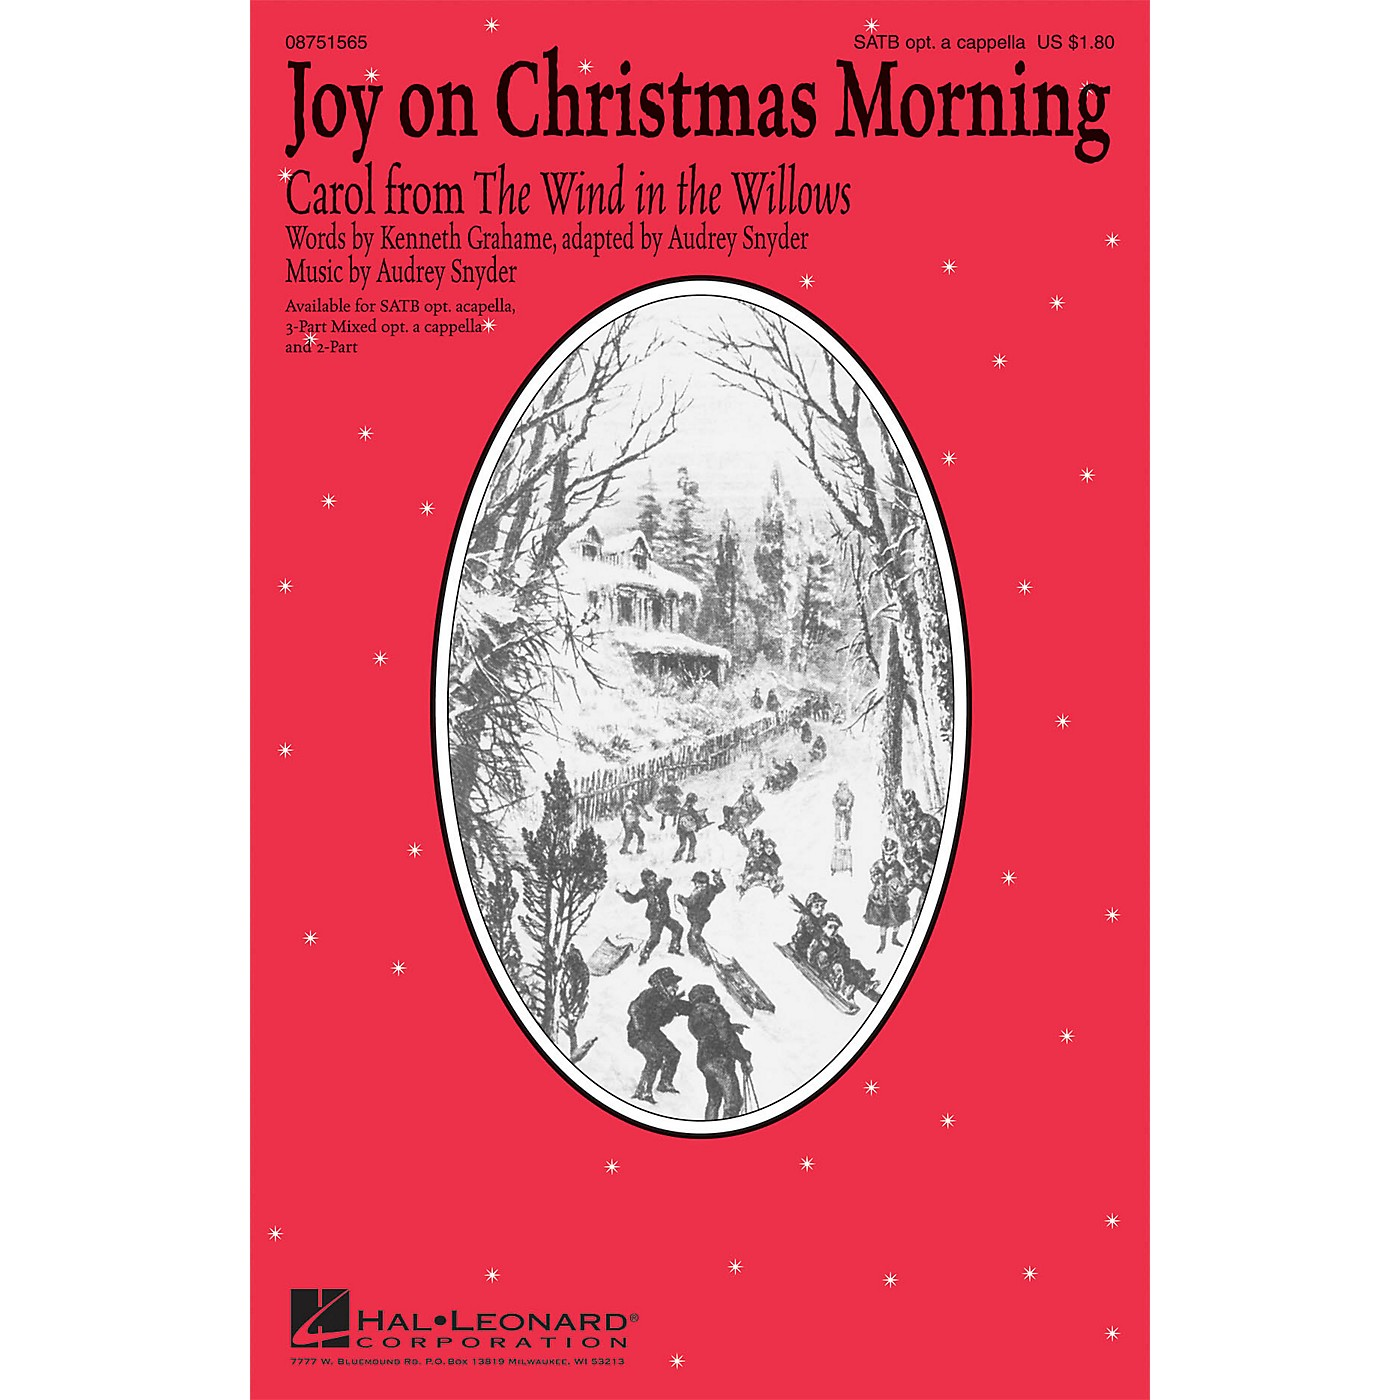 Hal Leonard Joy on Christmas Morning (Carol from The Wind in the Willows) 2-Part Composed by Audrey Snyder thumbnail